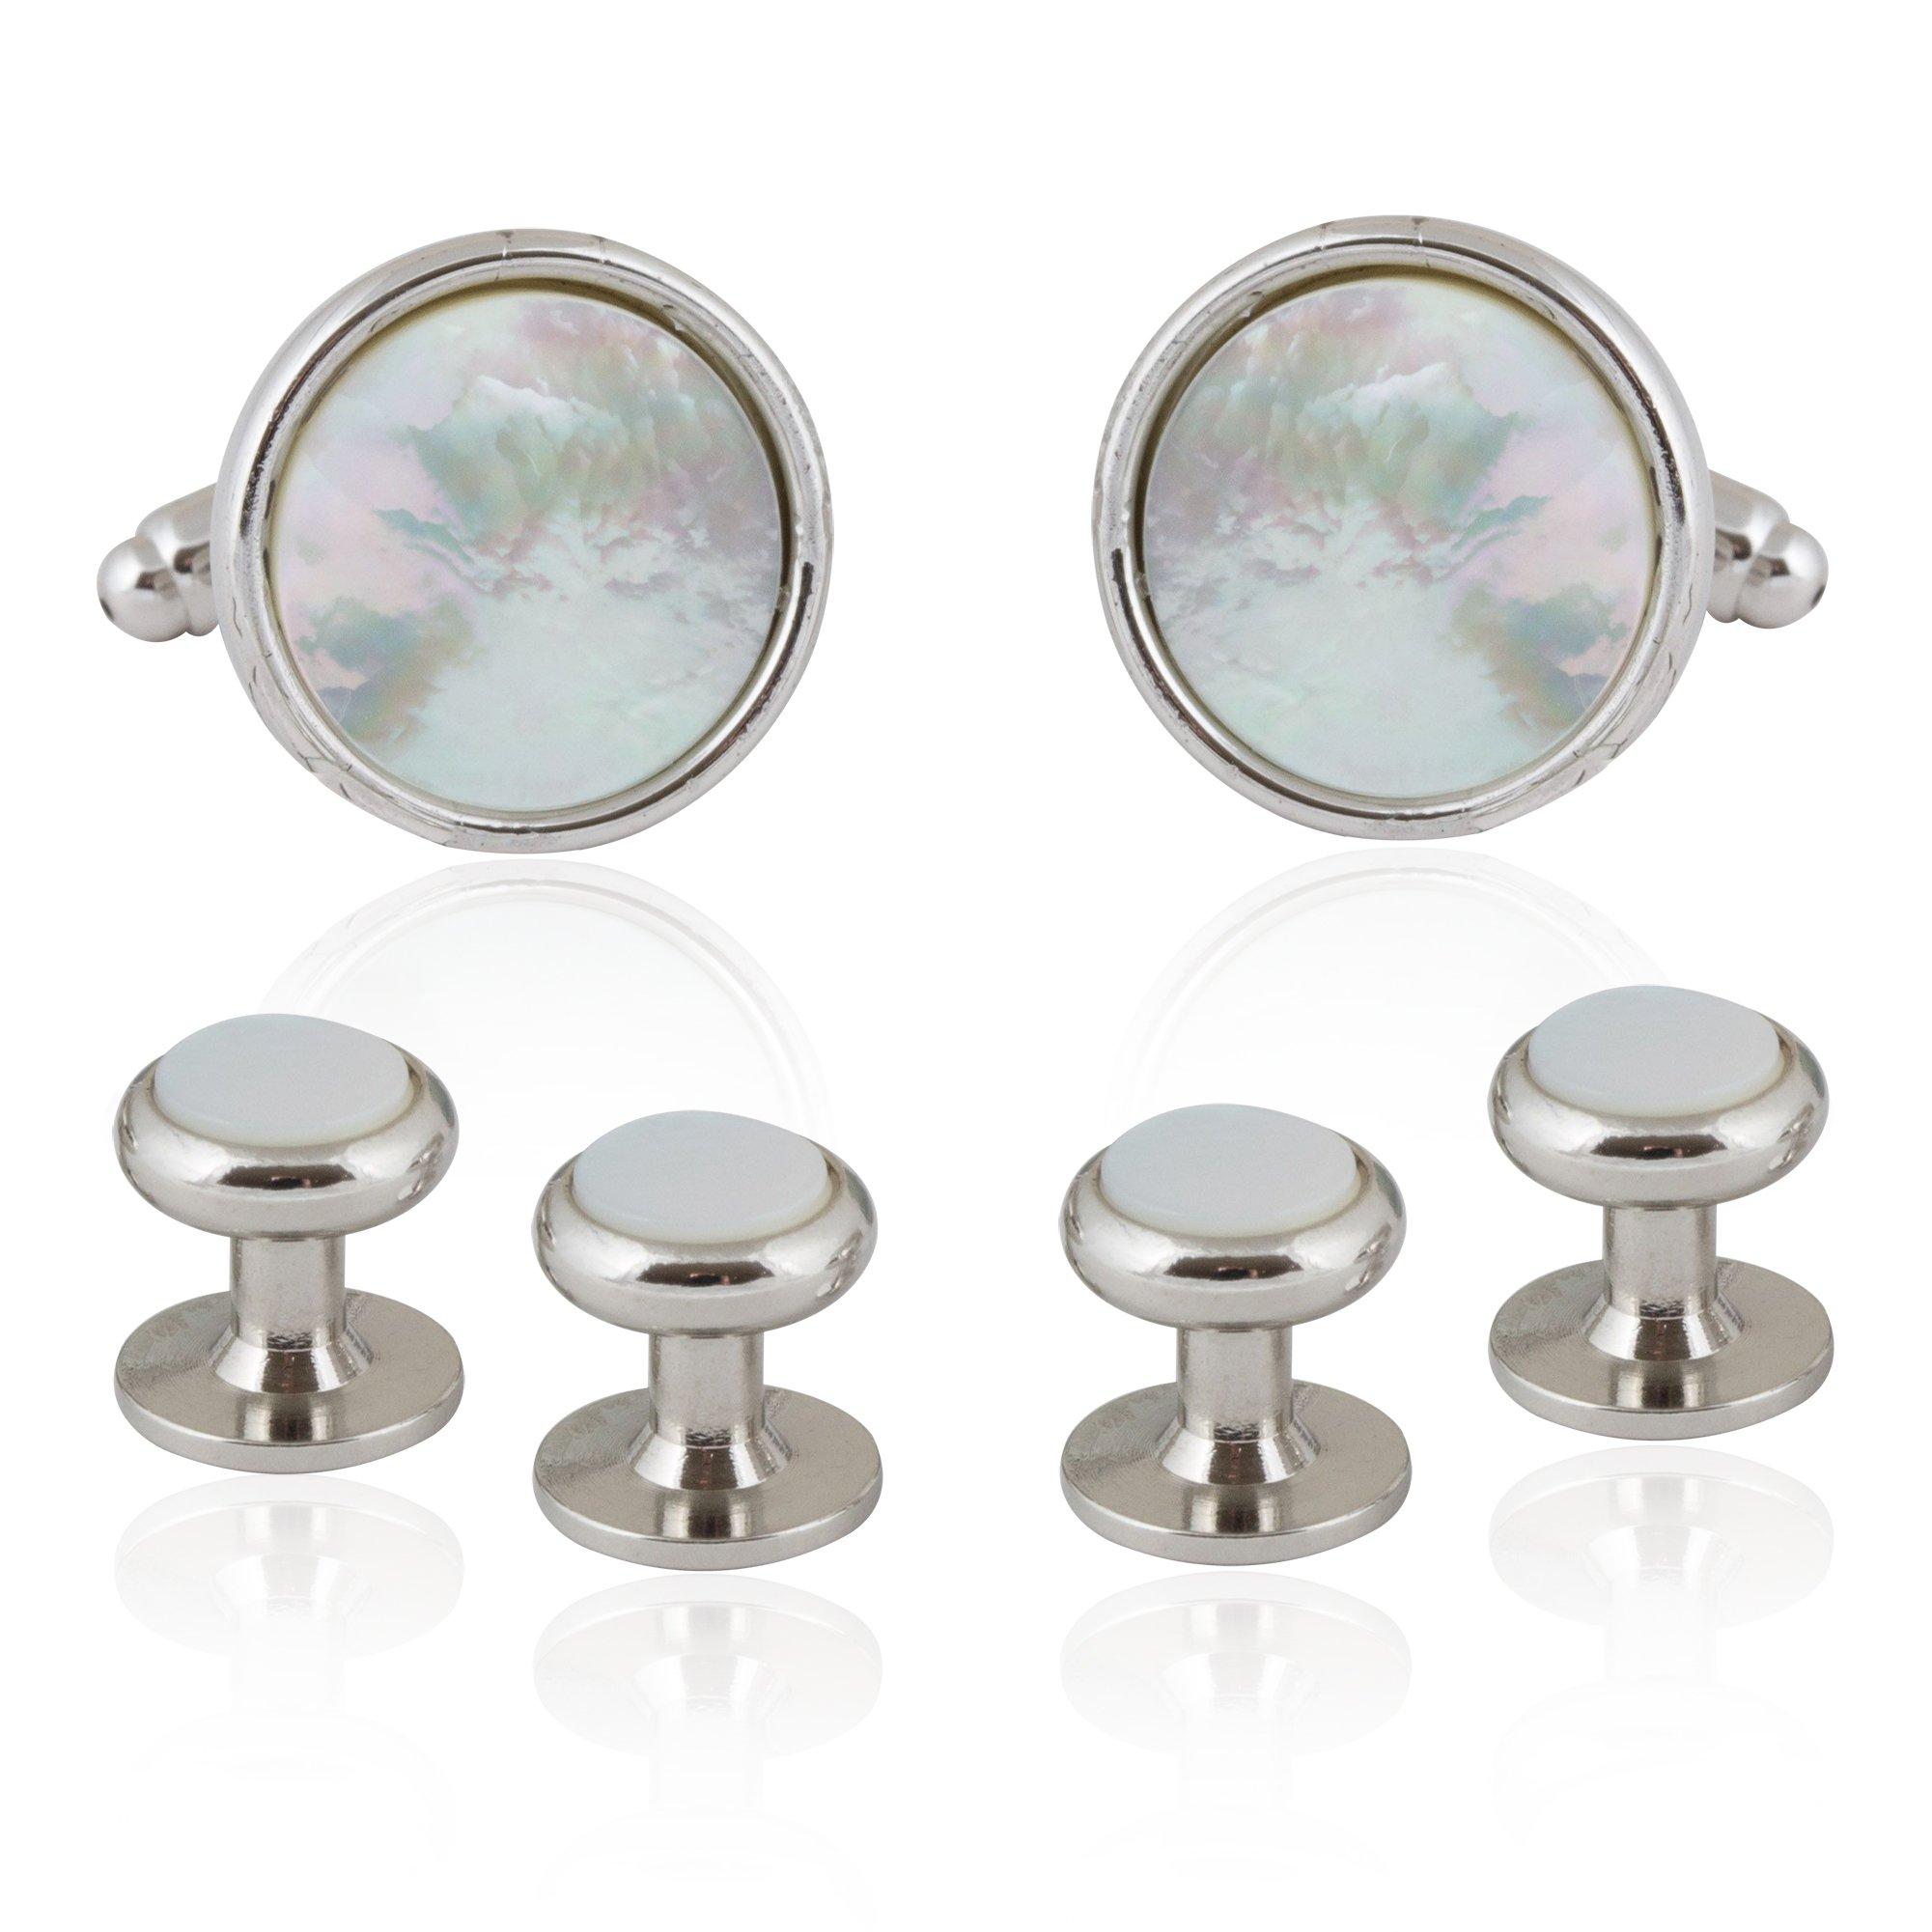 Cuff-Daddy Silver and Mother of Pearl Tuxedo Cufflinks Studs Formal Set with Presentation Box